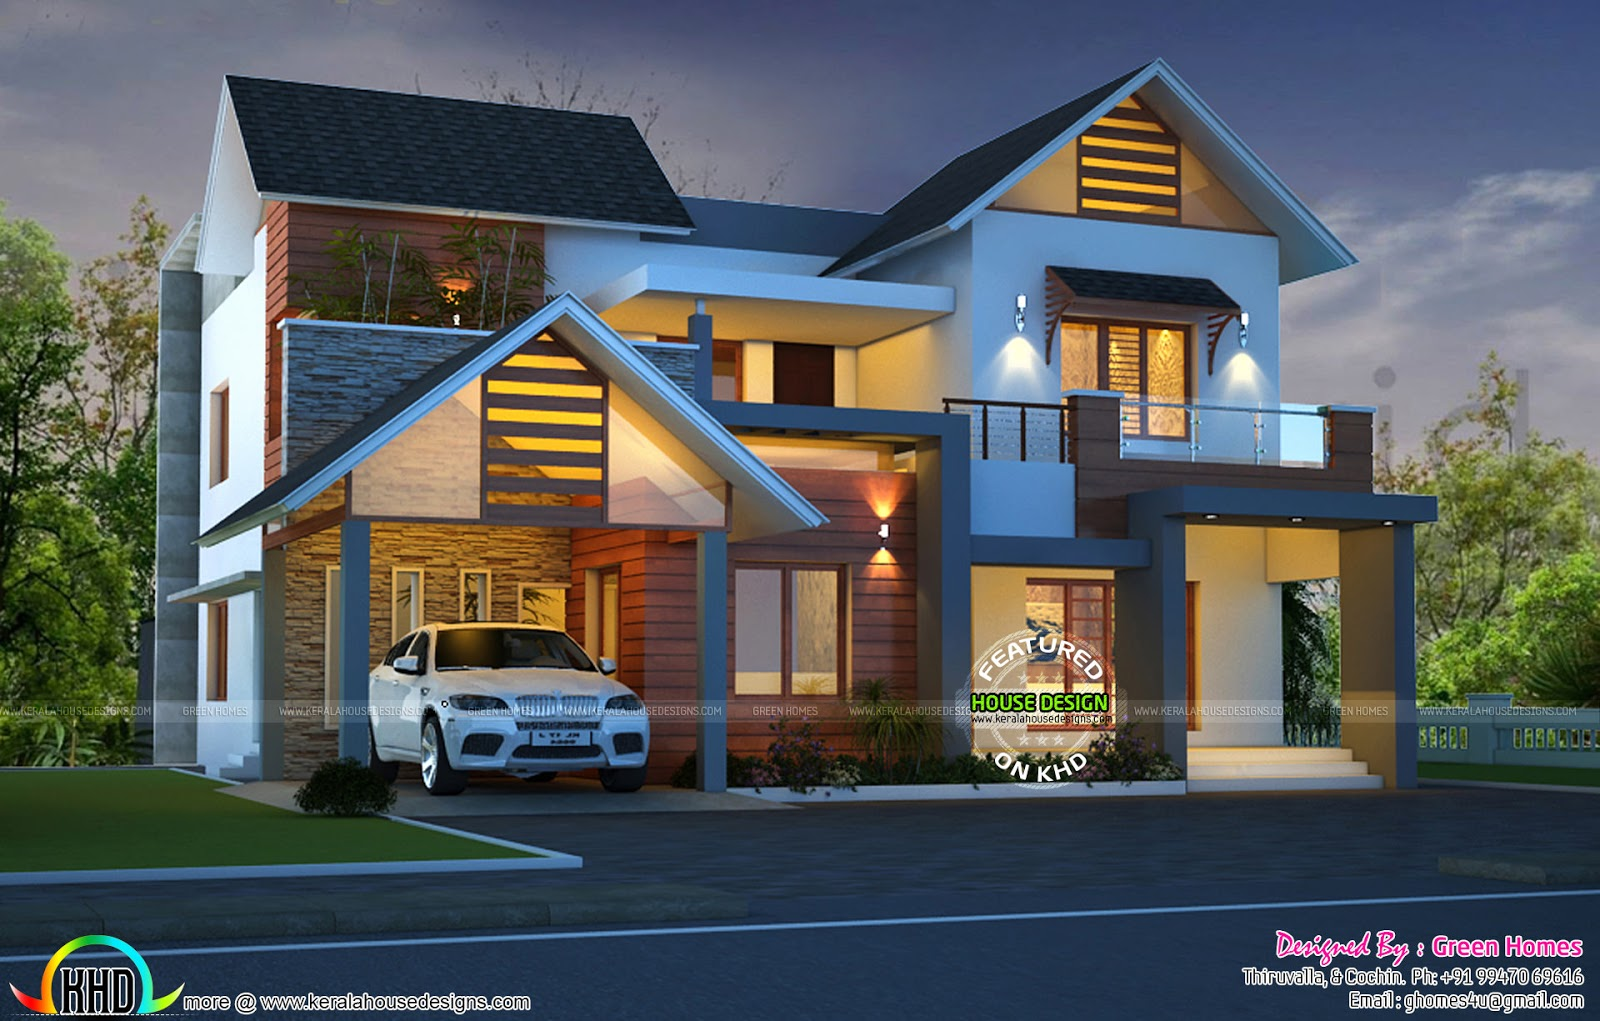 Cute night view Kerala home design | Kerala home design | Bloglovin'